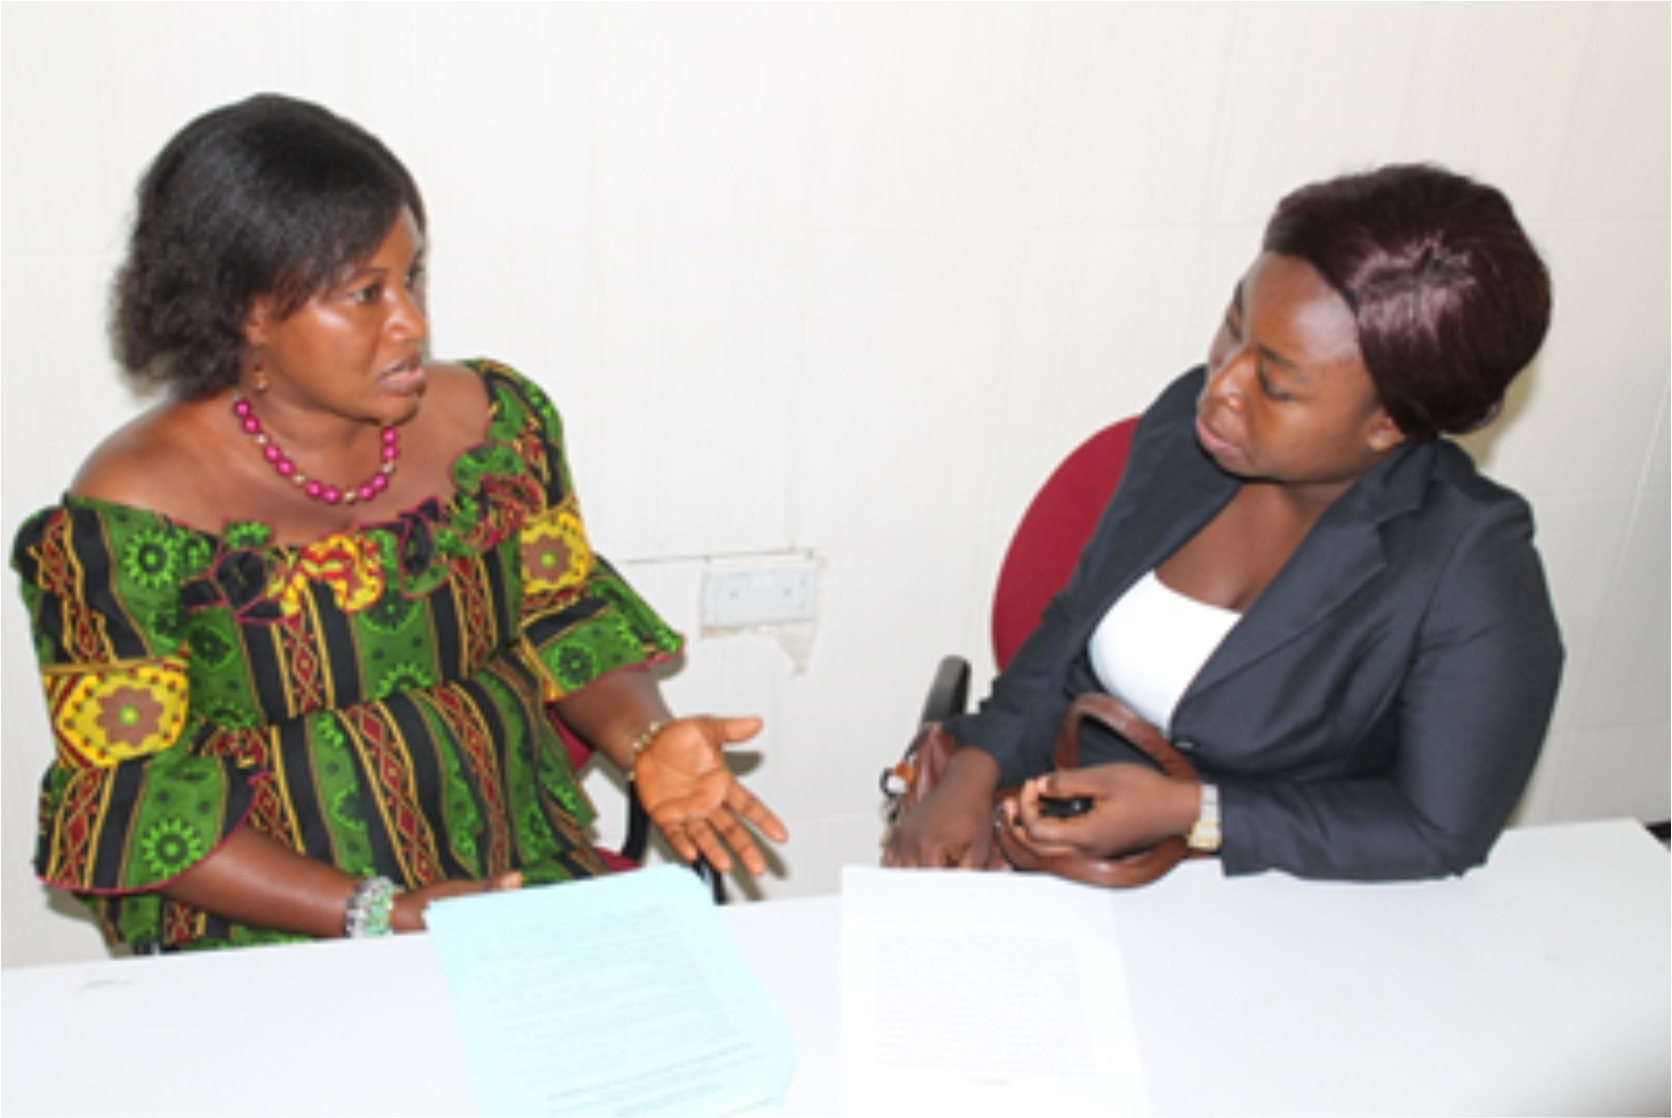 The researcher-Benedicta Ahomah Bioh (right) interviewing the Municipal Girl Child Coordinator (Winneba Municipal GES Office), Mrs. Faustina Akosua Agyeiwaa Kwofie.